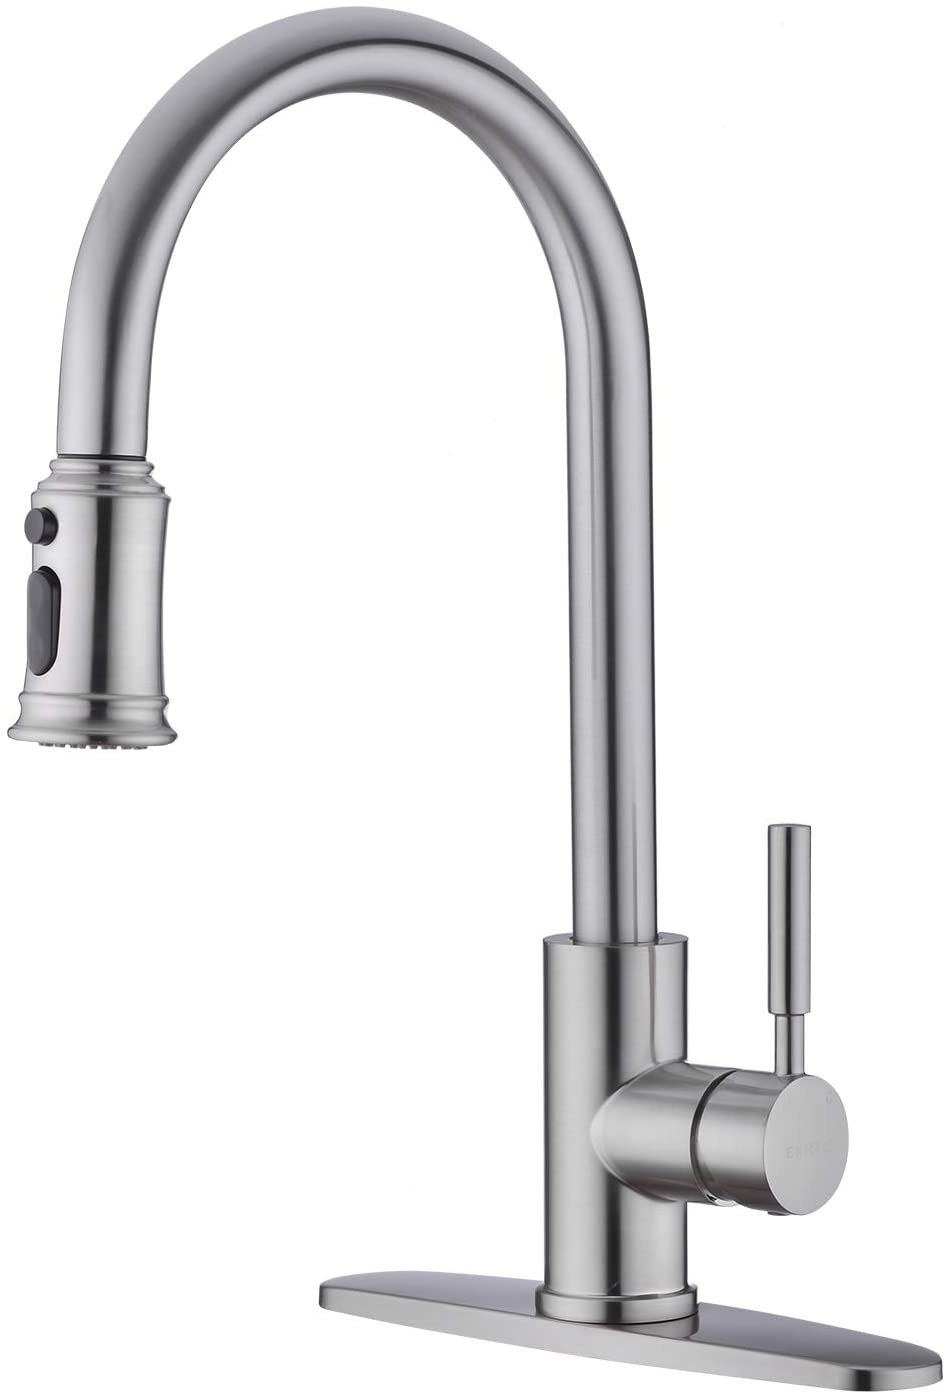 EKRTE Single Handle 1 or 3 Hole High Arc Brushed Nickel Kitchen Faucet with Pull Out Sprayer, Stainless Steel Pull Down Kitchen Sink Faucet With Deck